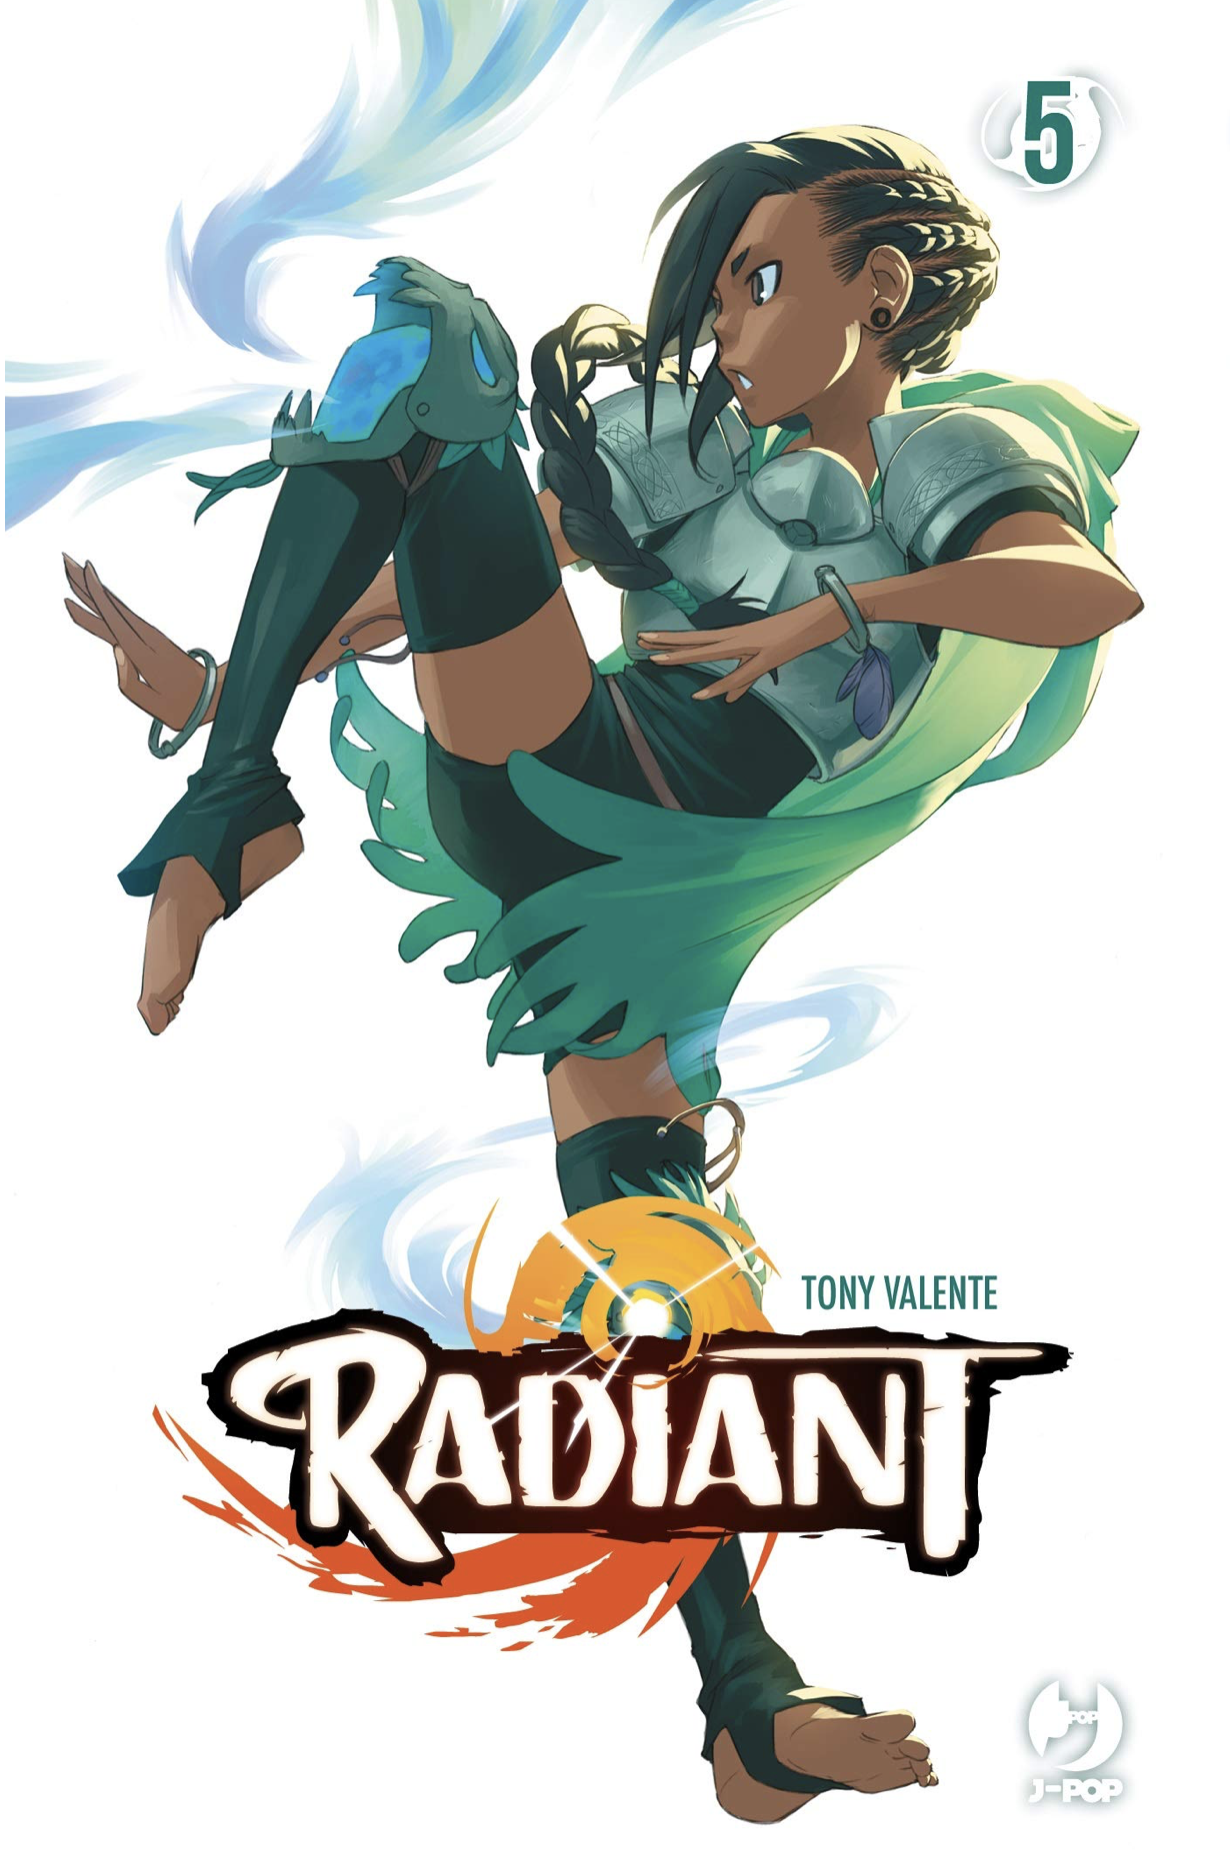 Radiant pack 2° arco narrativo vol 5-10